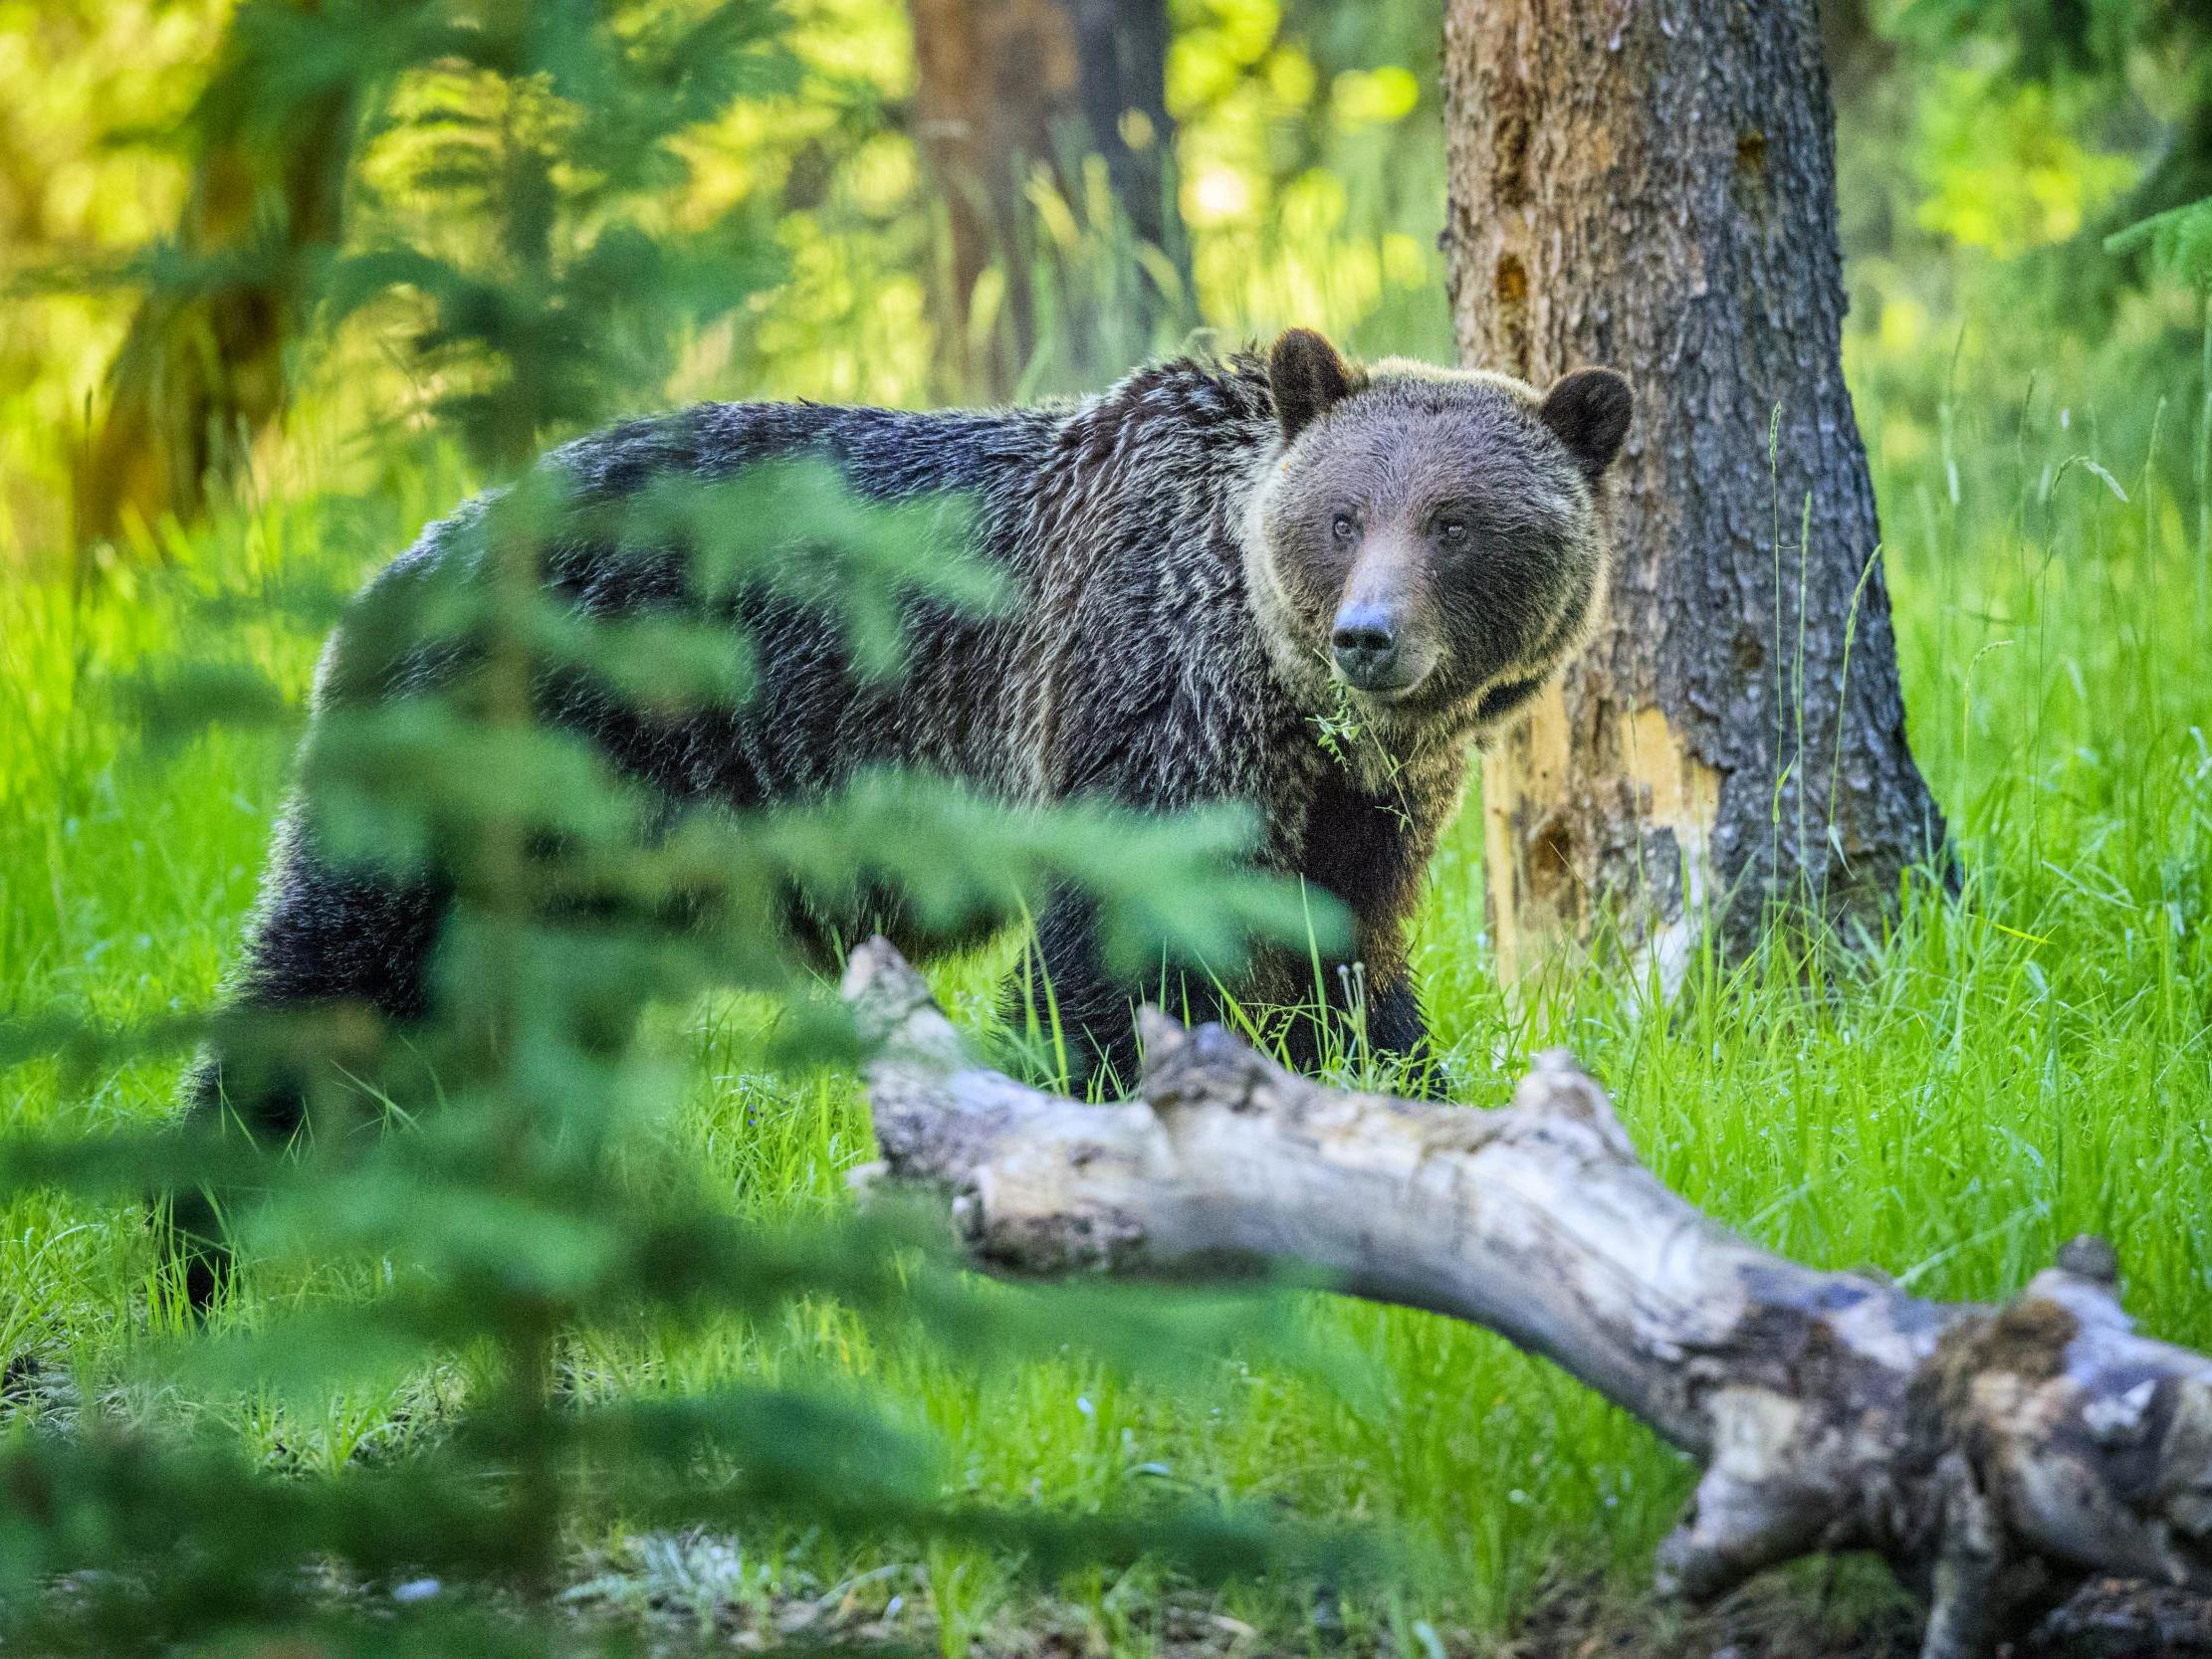 Authorities ordered to kill wild bear after attack on father and son in Italy